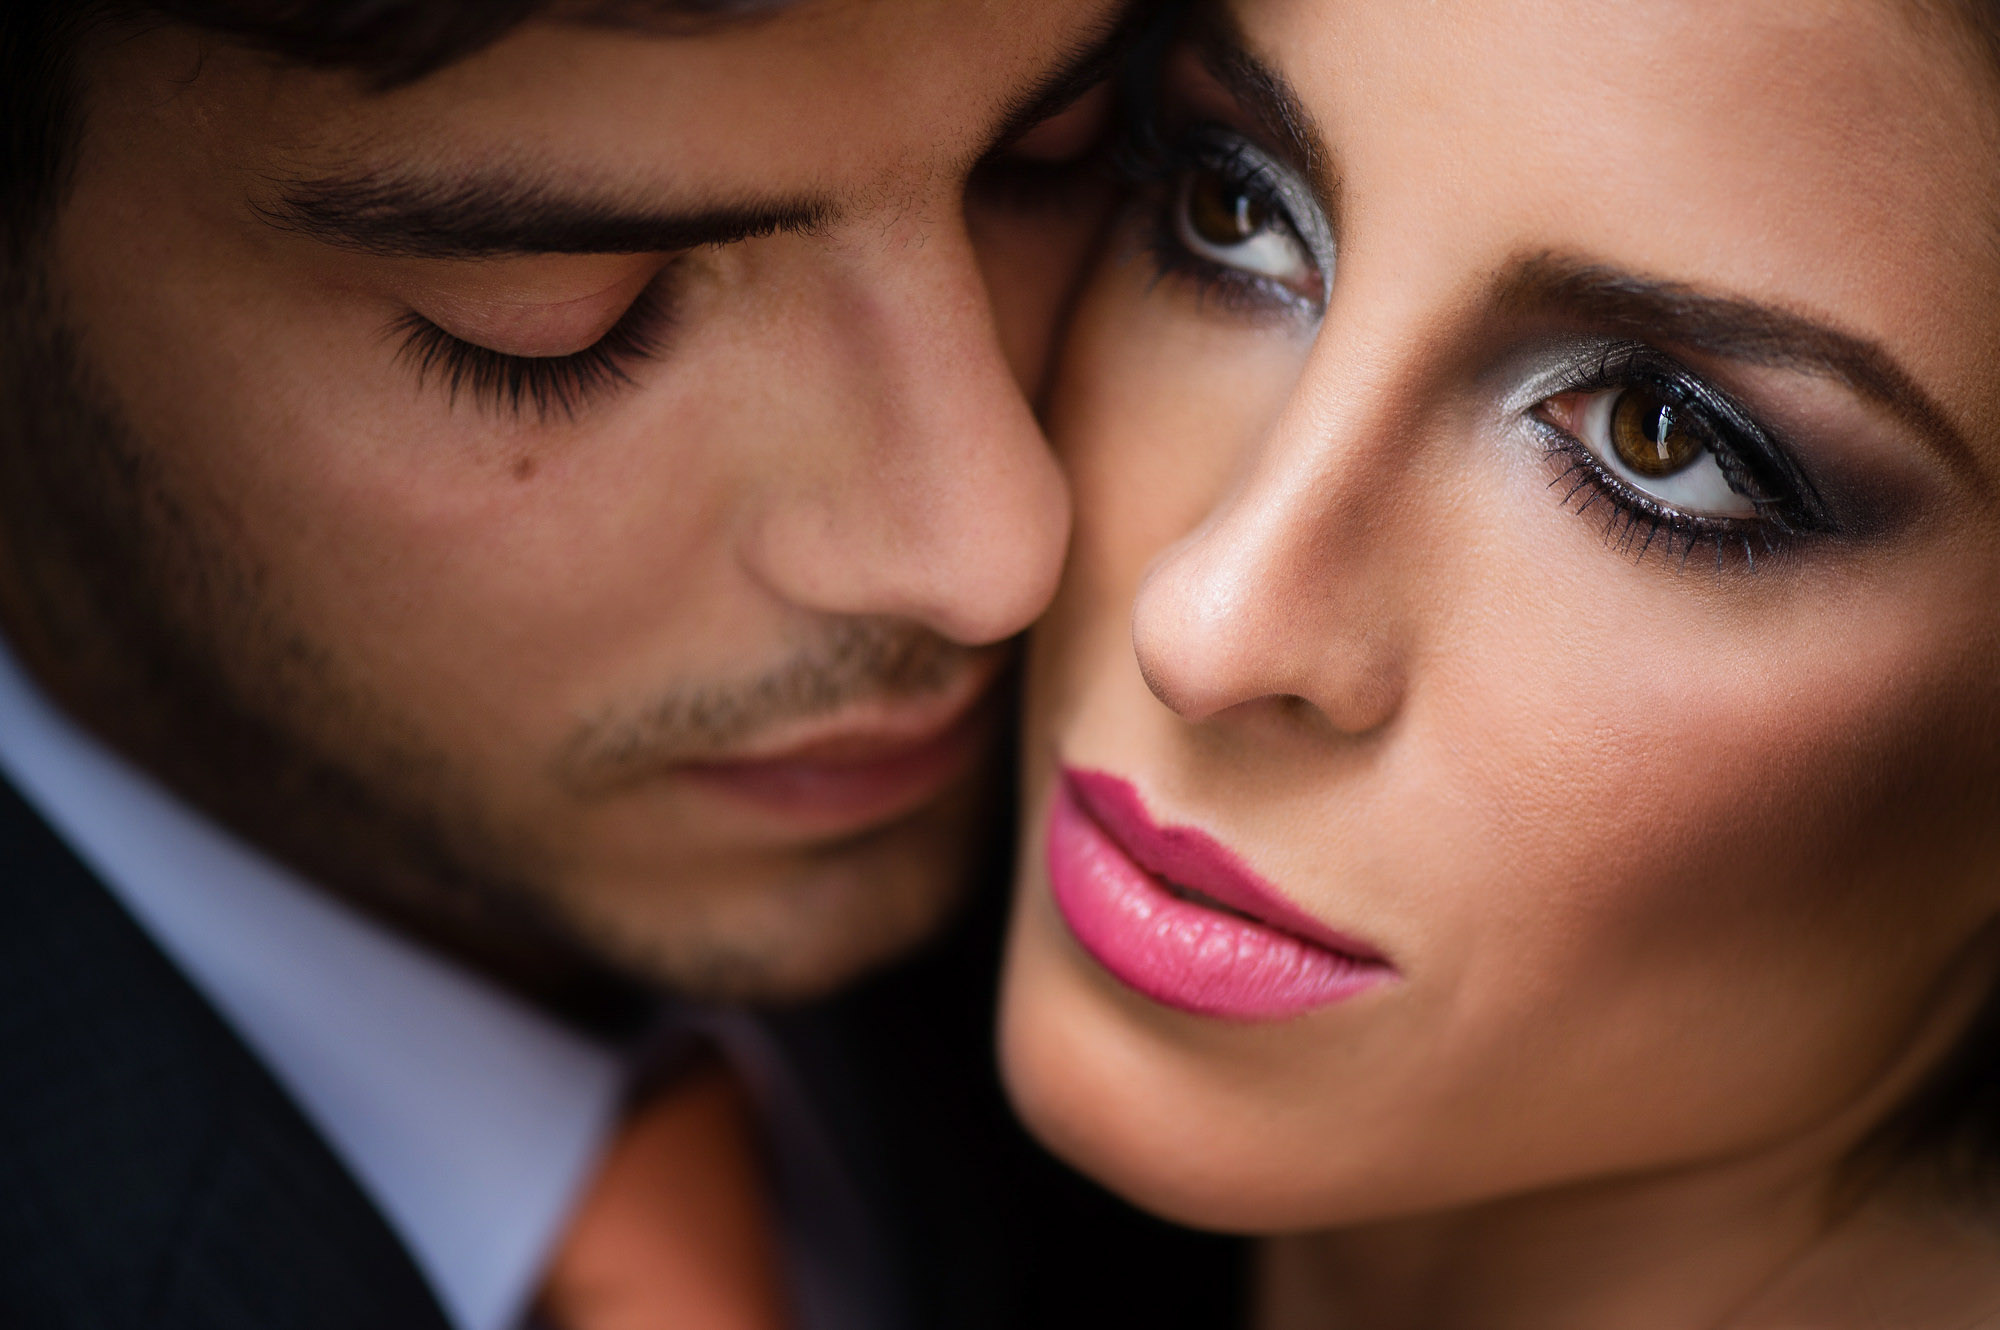 Dramatic bridal make-up, silver shadow and pink lips  - photo by Jerry Ghionis - Australia and Nevada